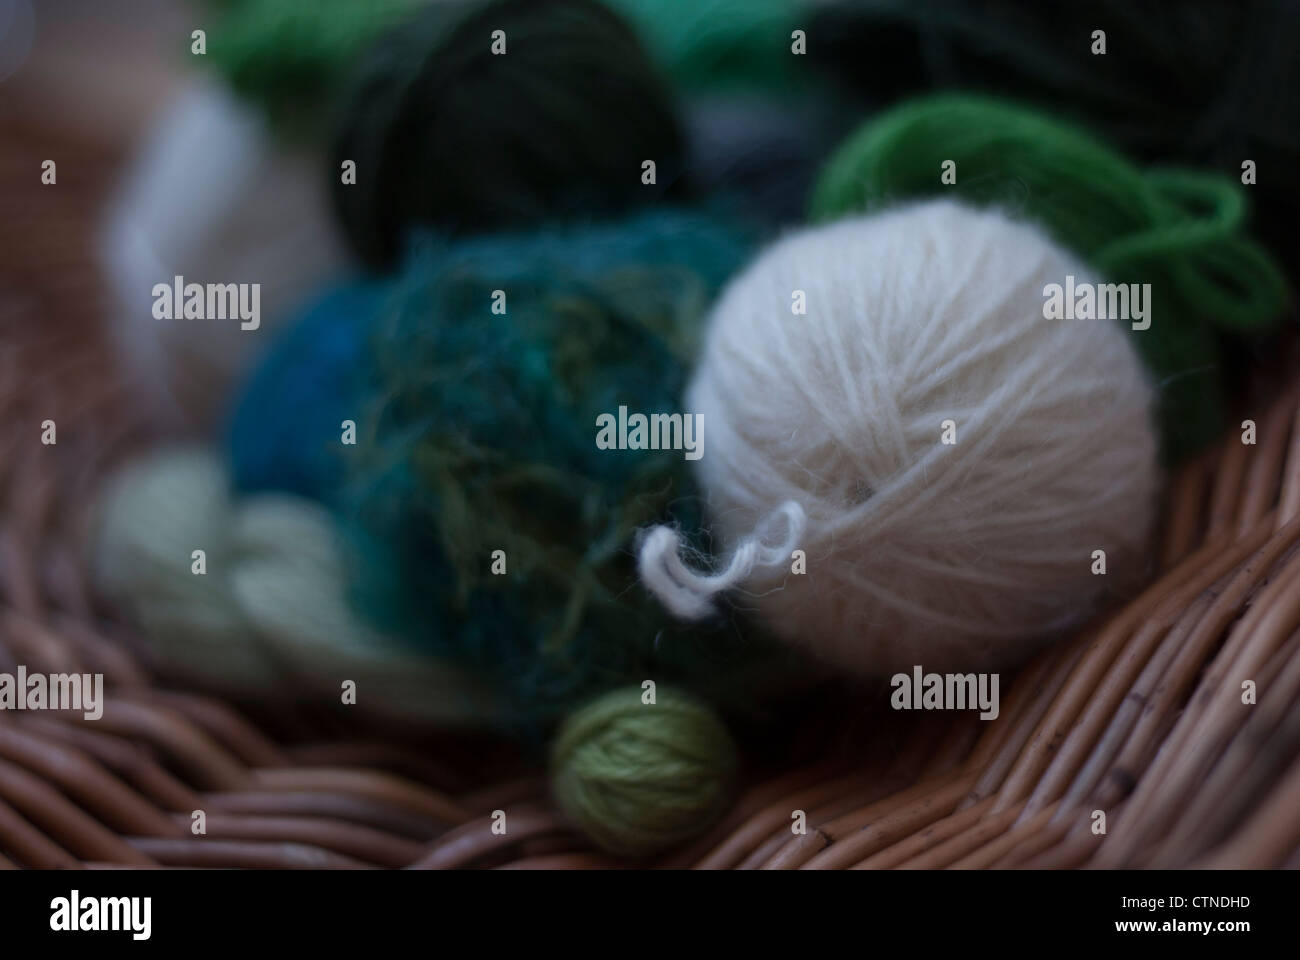 Balls of wool in shades of green, blue and white and on circular willow basket weave Stock Photo